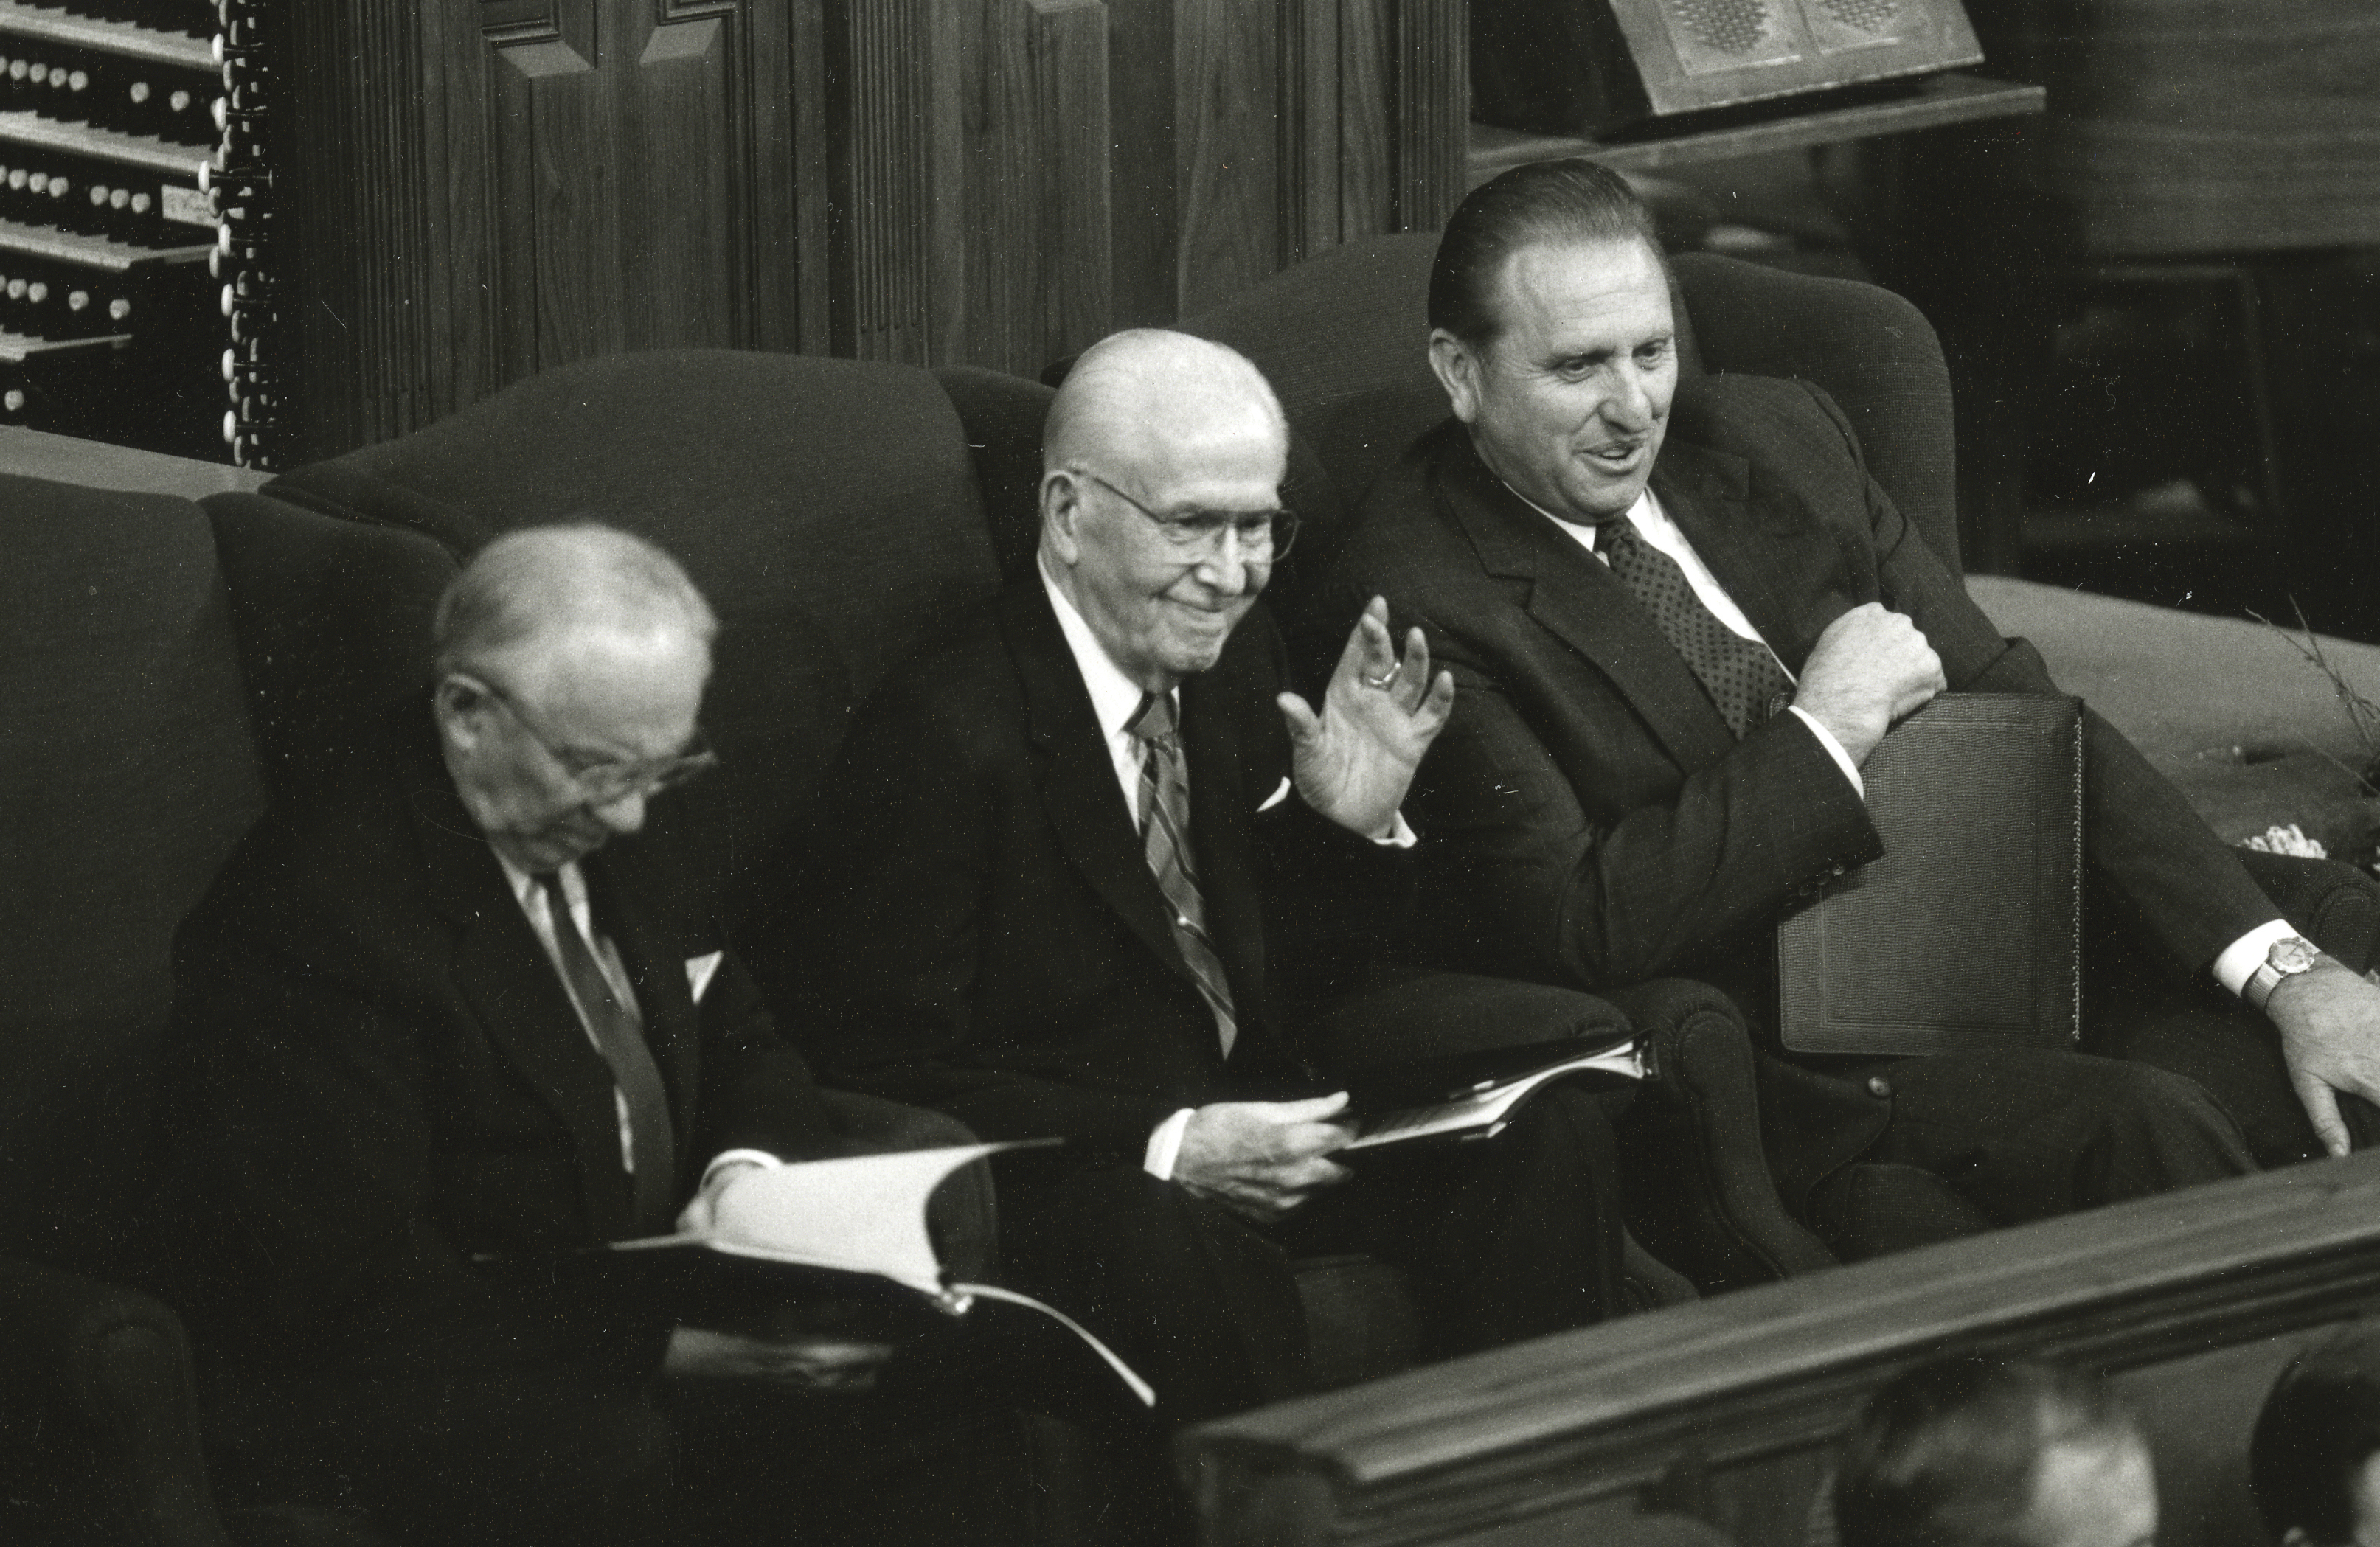 President Benson sitting between his counselors and waving to the audience in the Tabernacle.